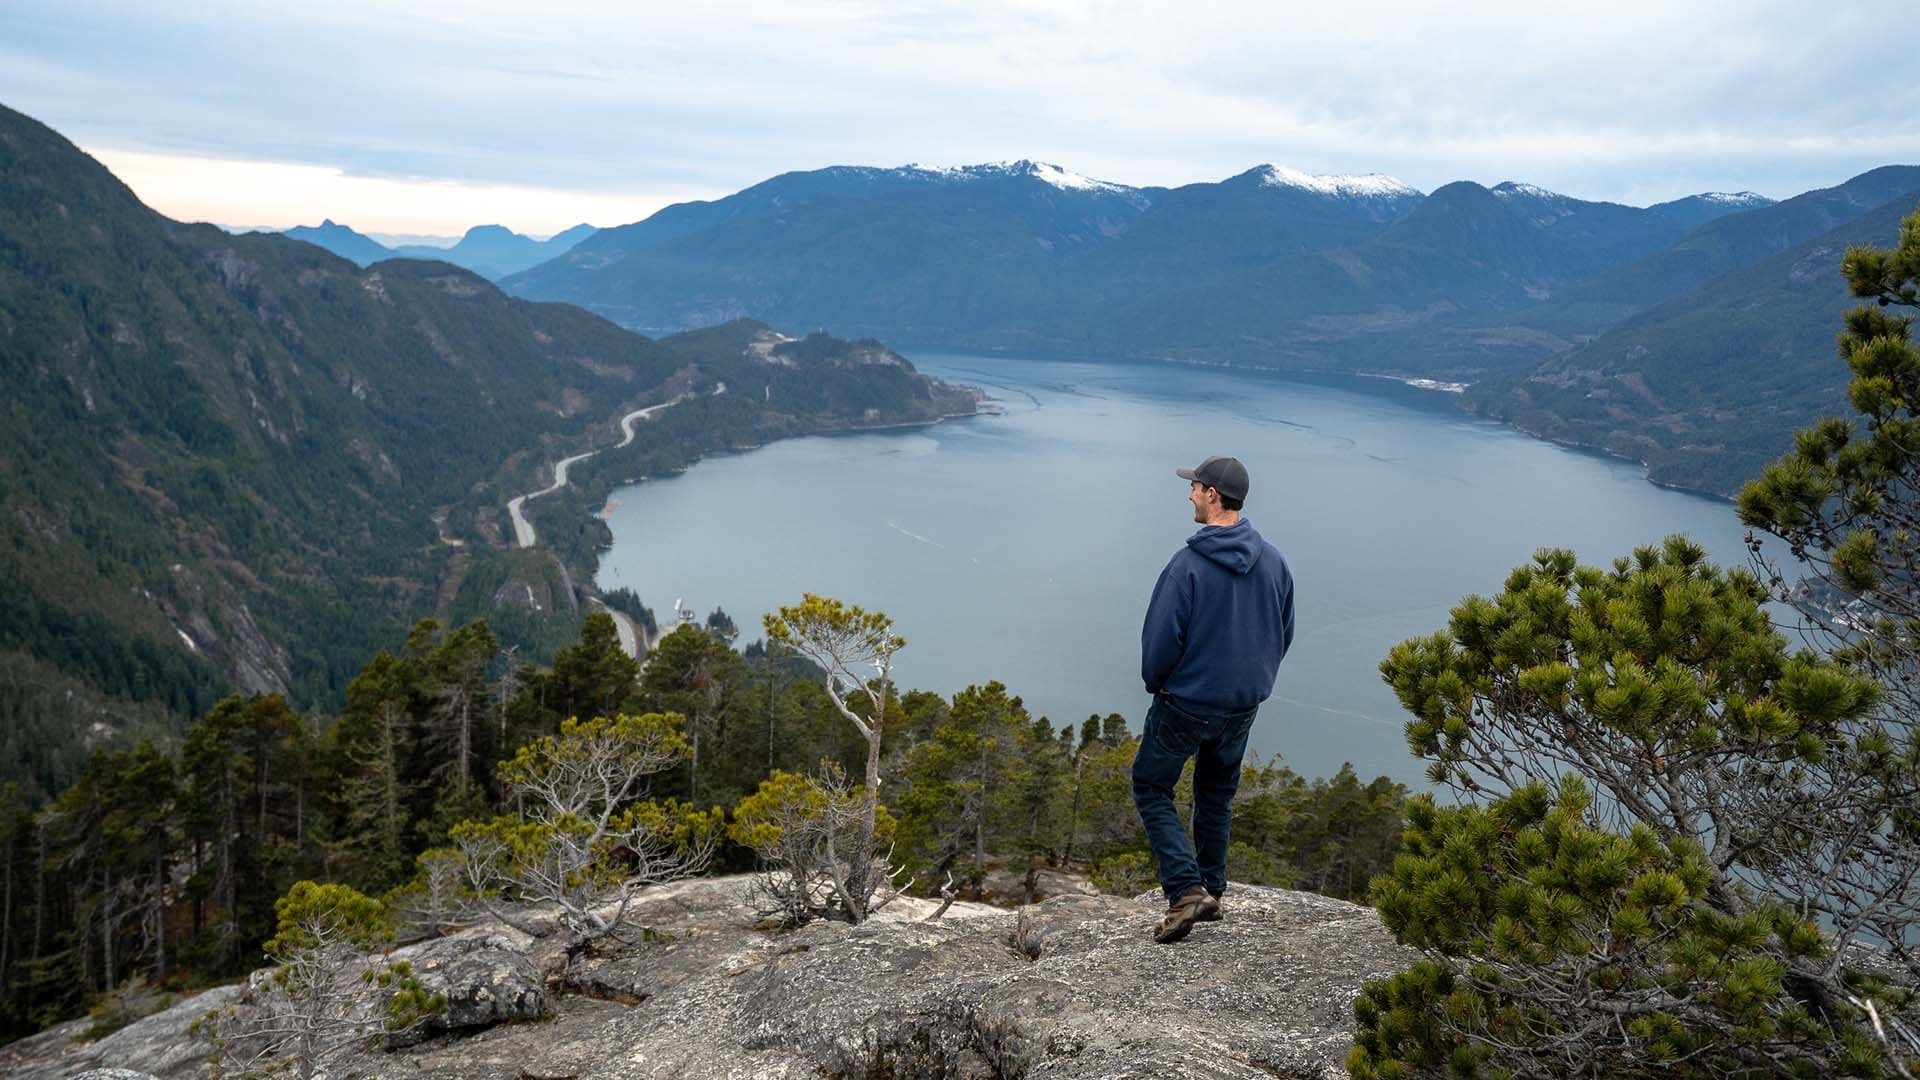 Eamon admires the view from Stawamus Chief Mountain, a one-hour drive from Vancouver.